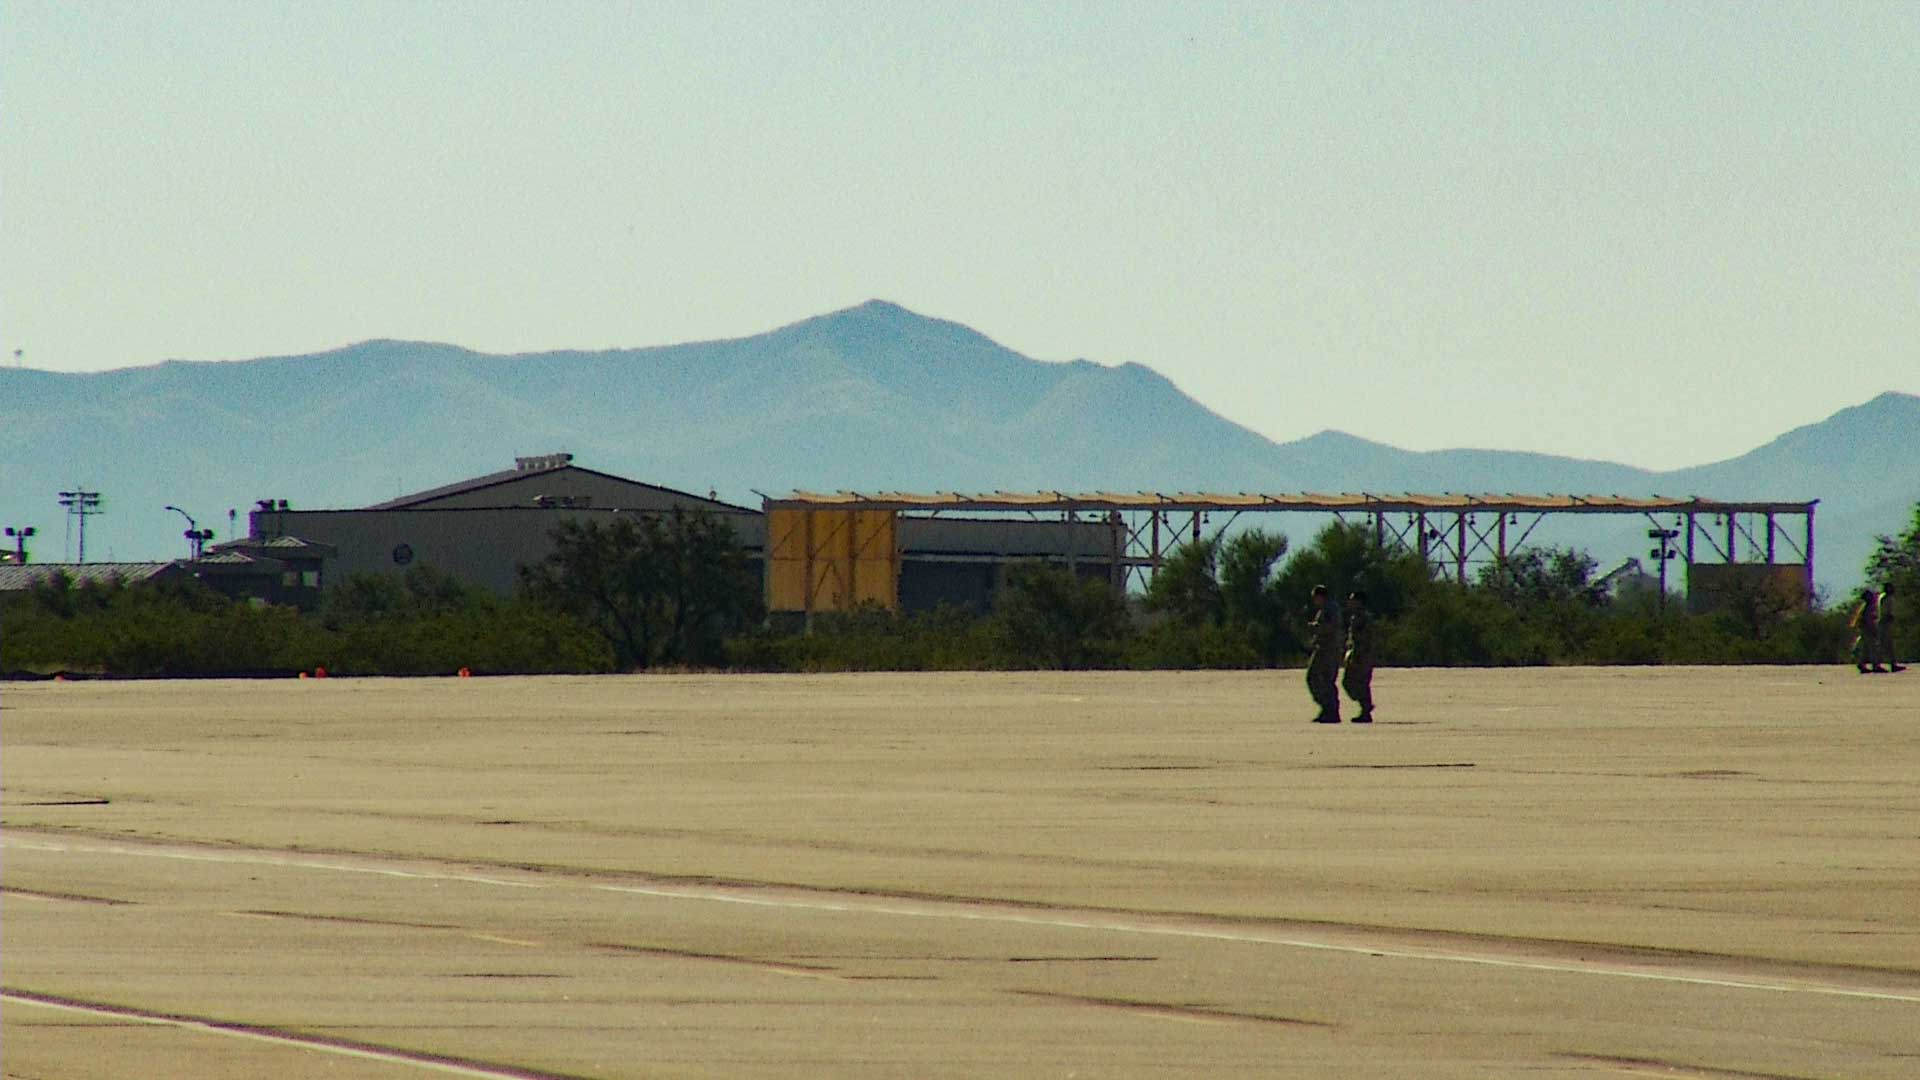 The flight line at Davis-Monthan Air Force Base.